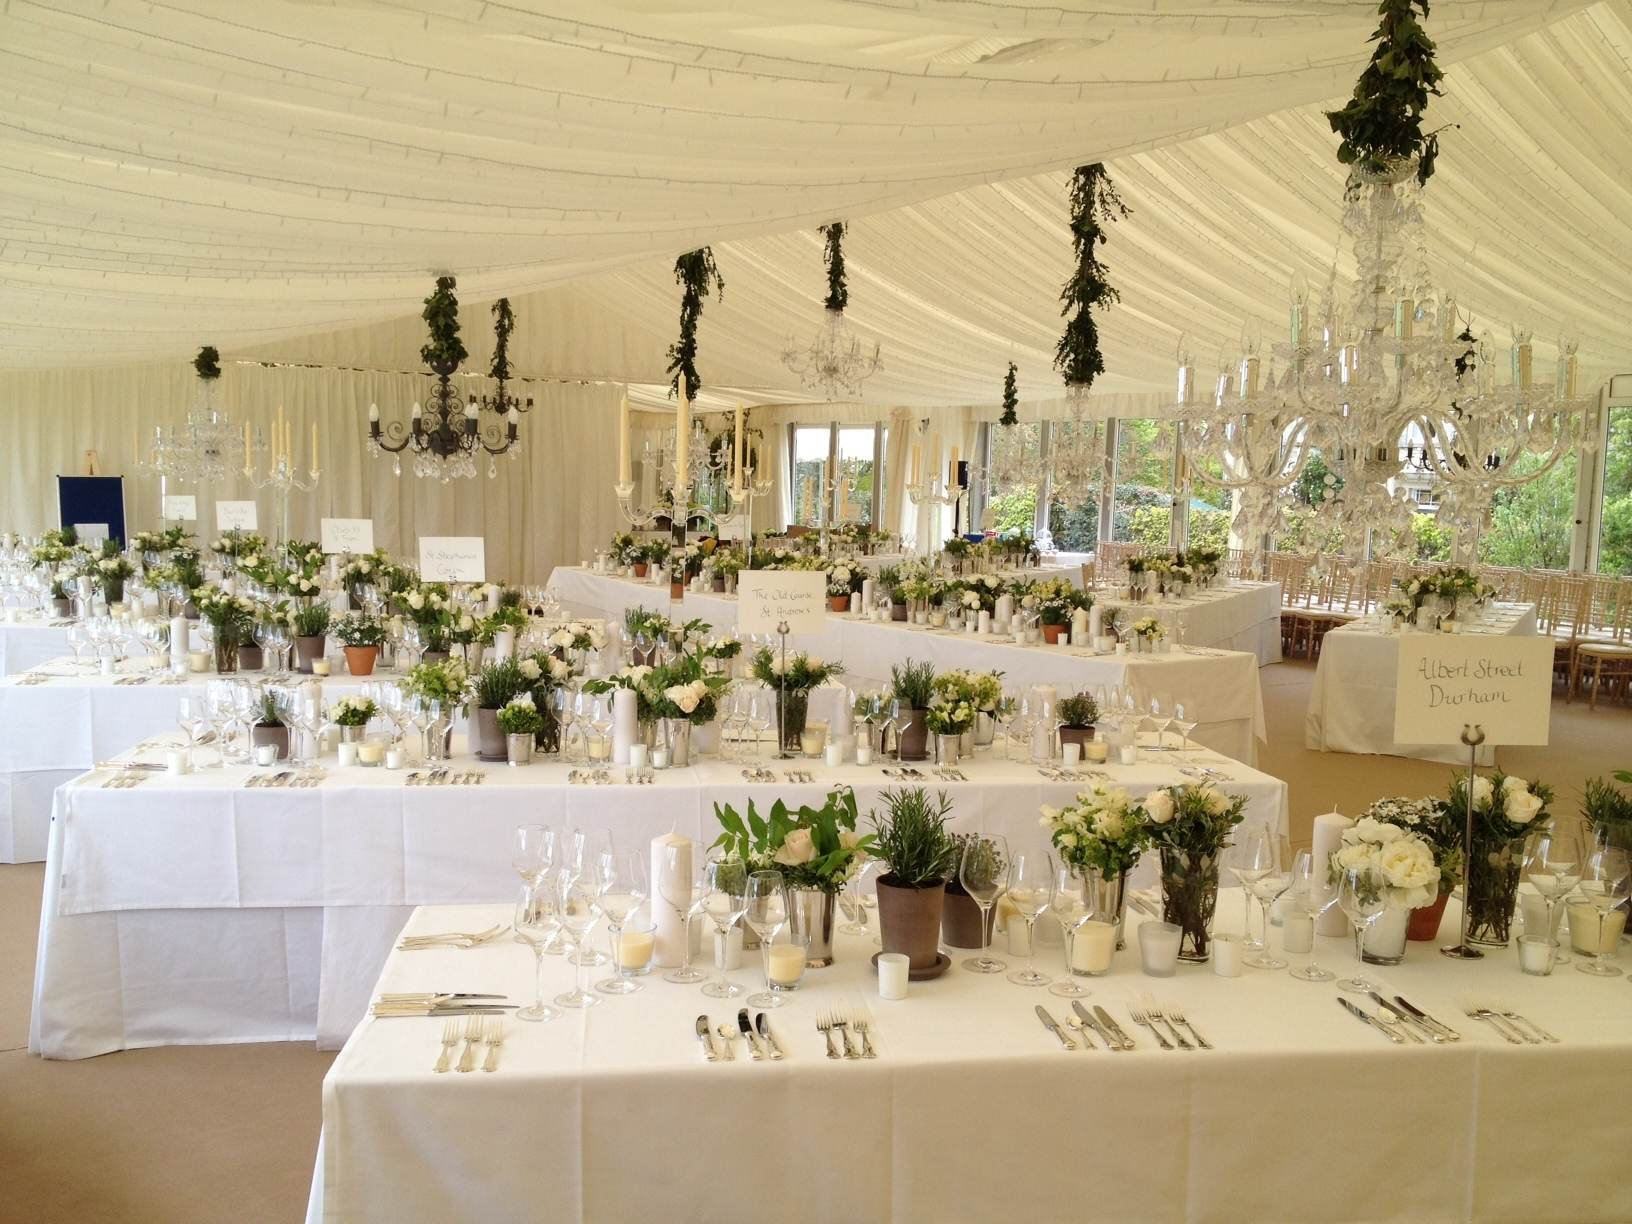 Wedding Hire - White Table cloths